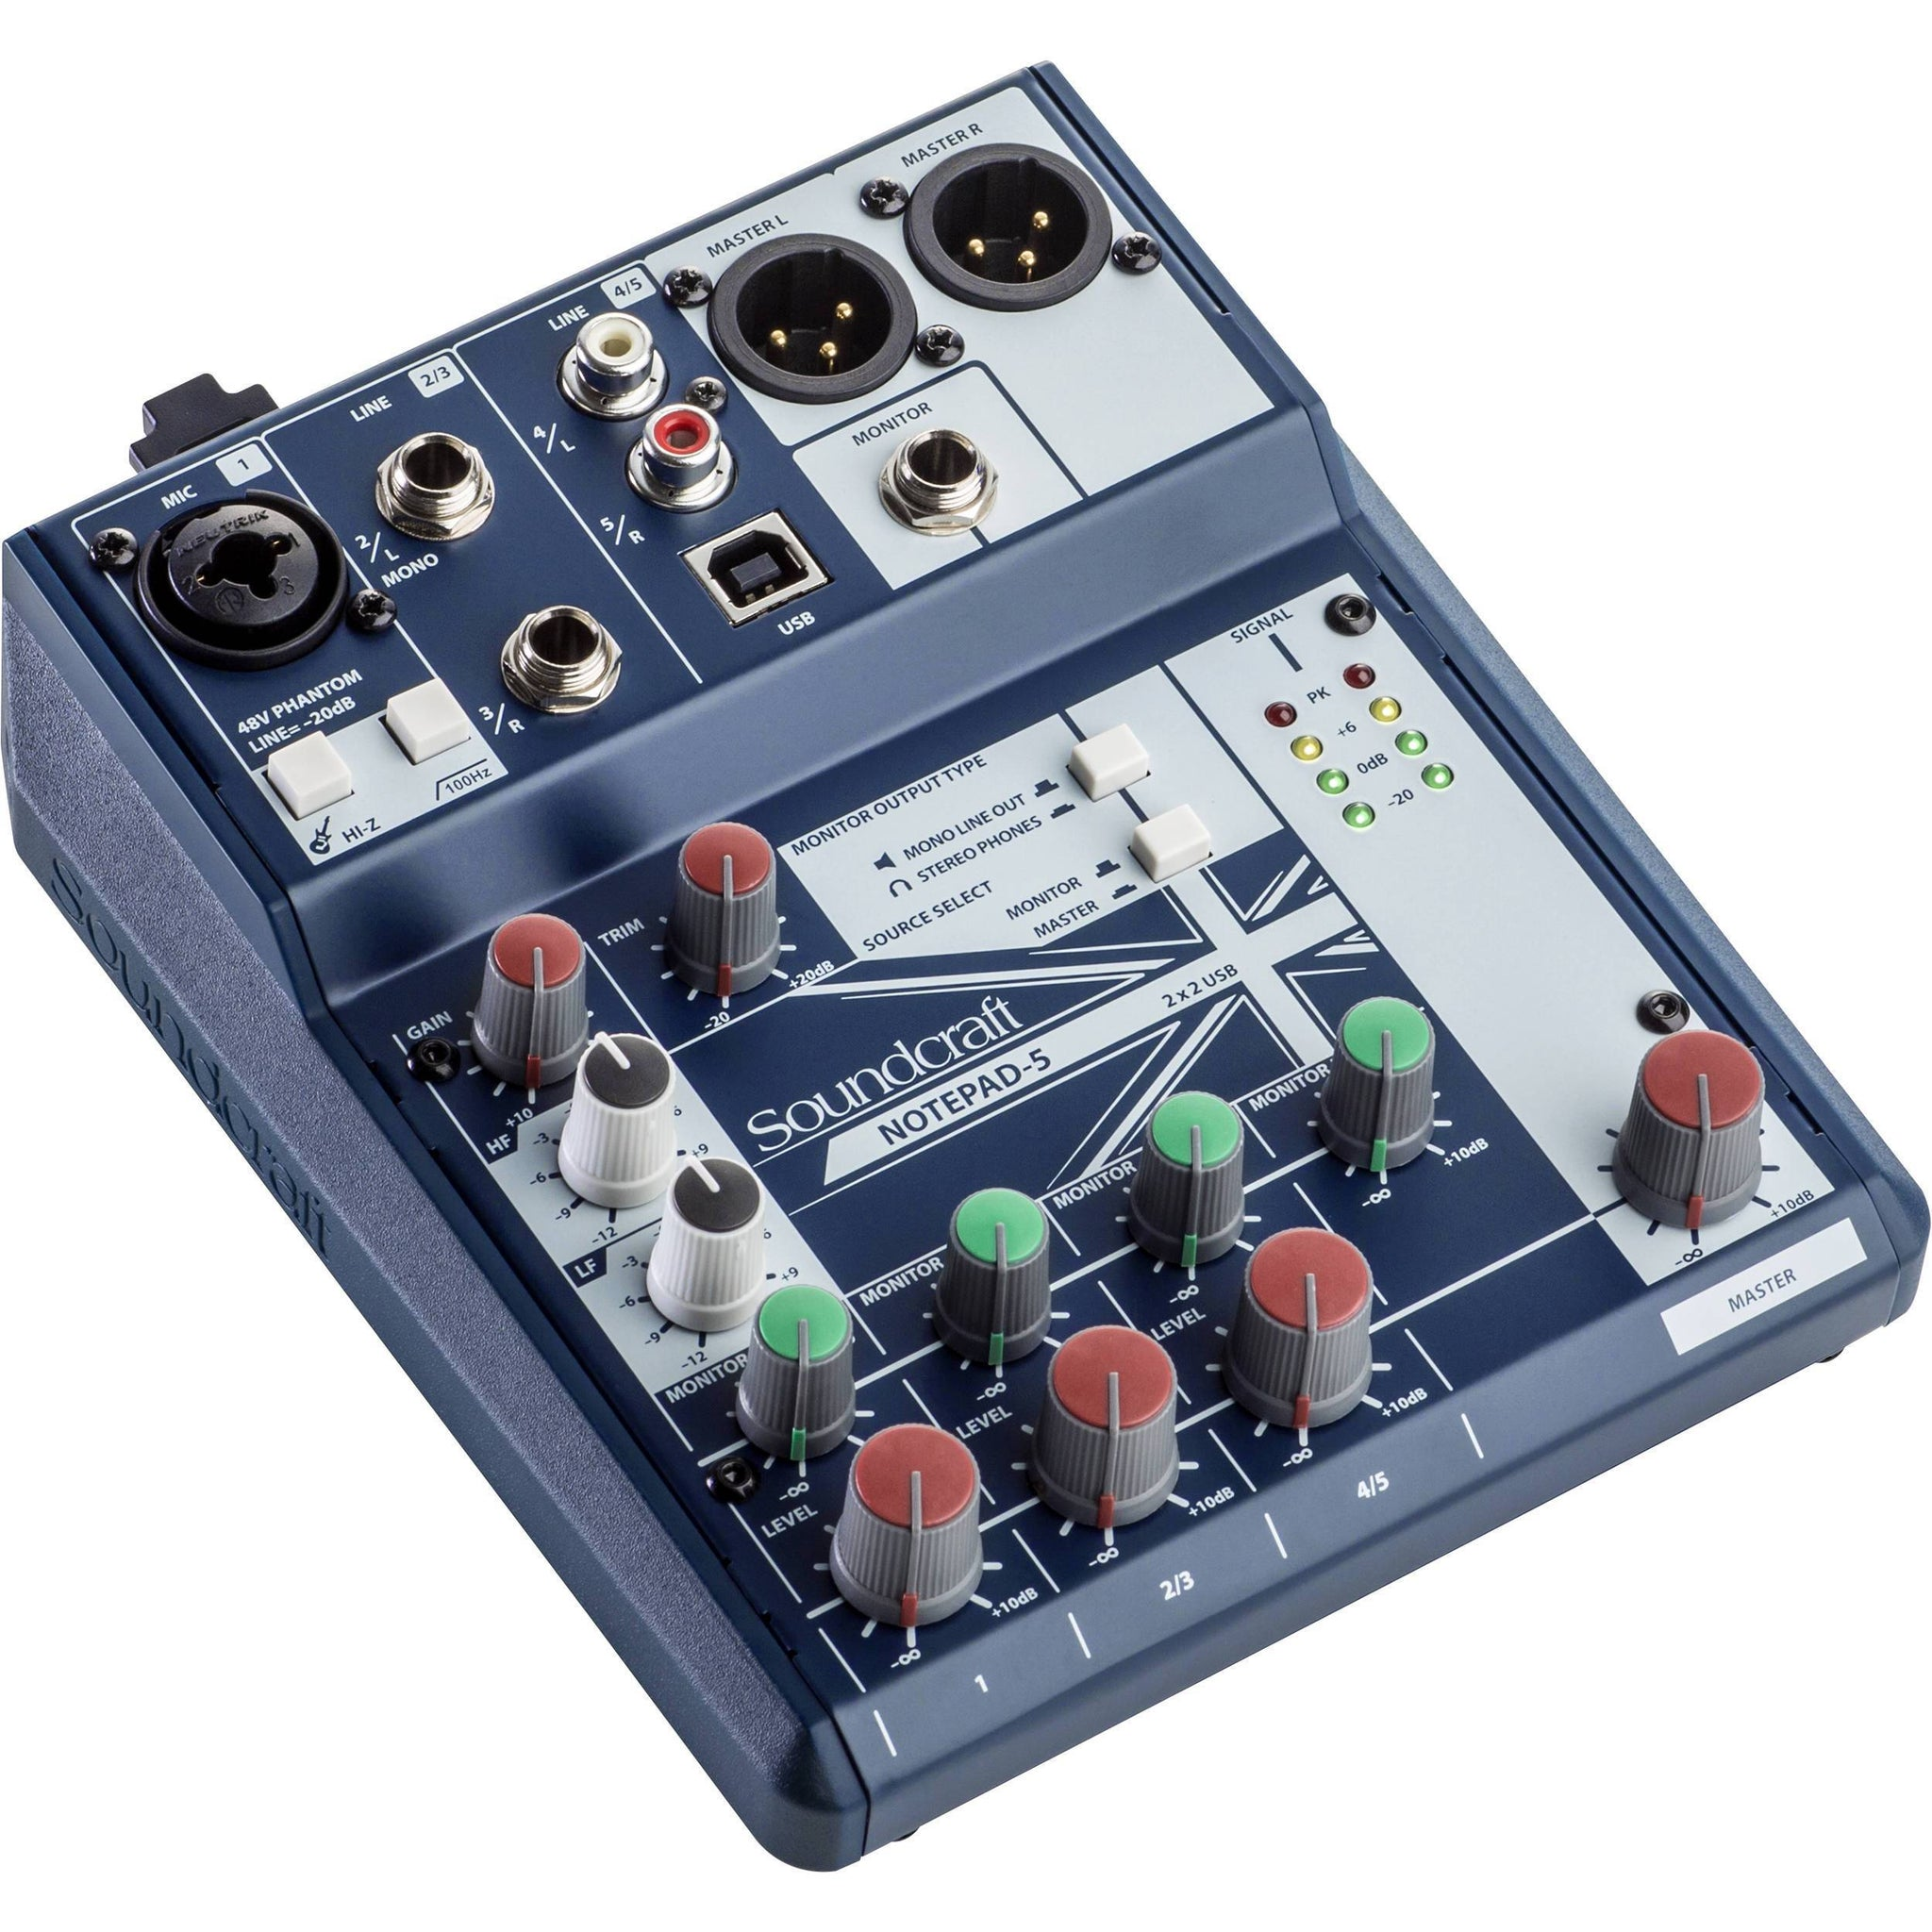 Soundcraft Notepad-5 Mixer with USB I/O